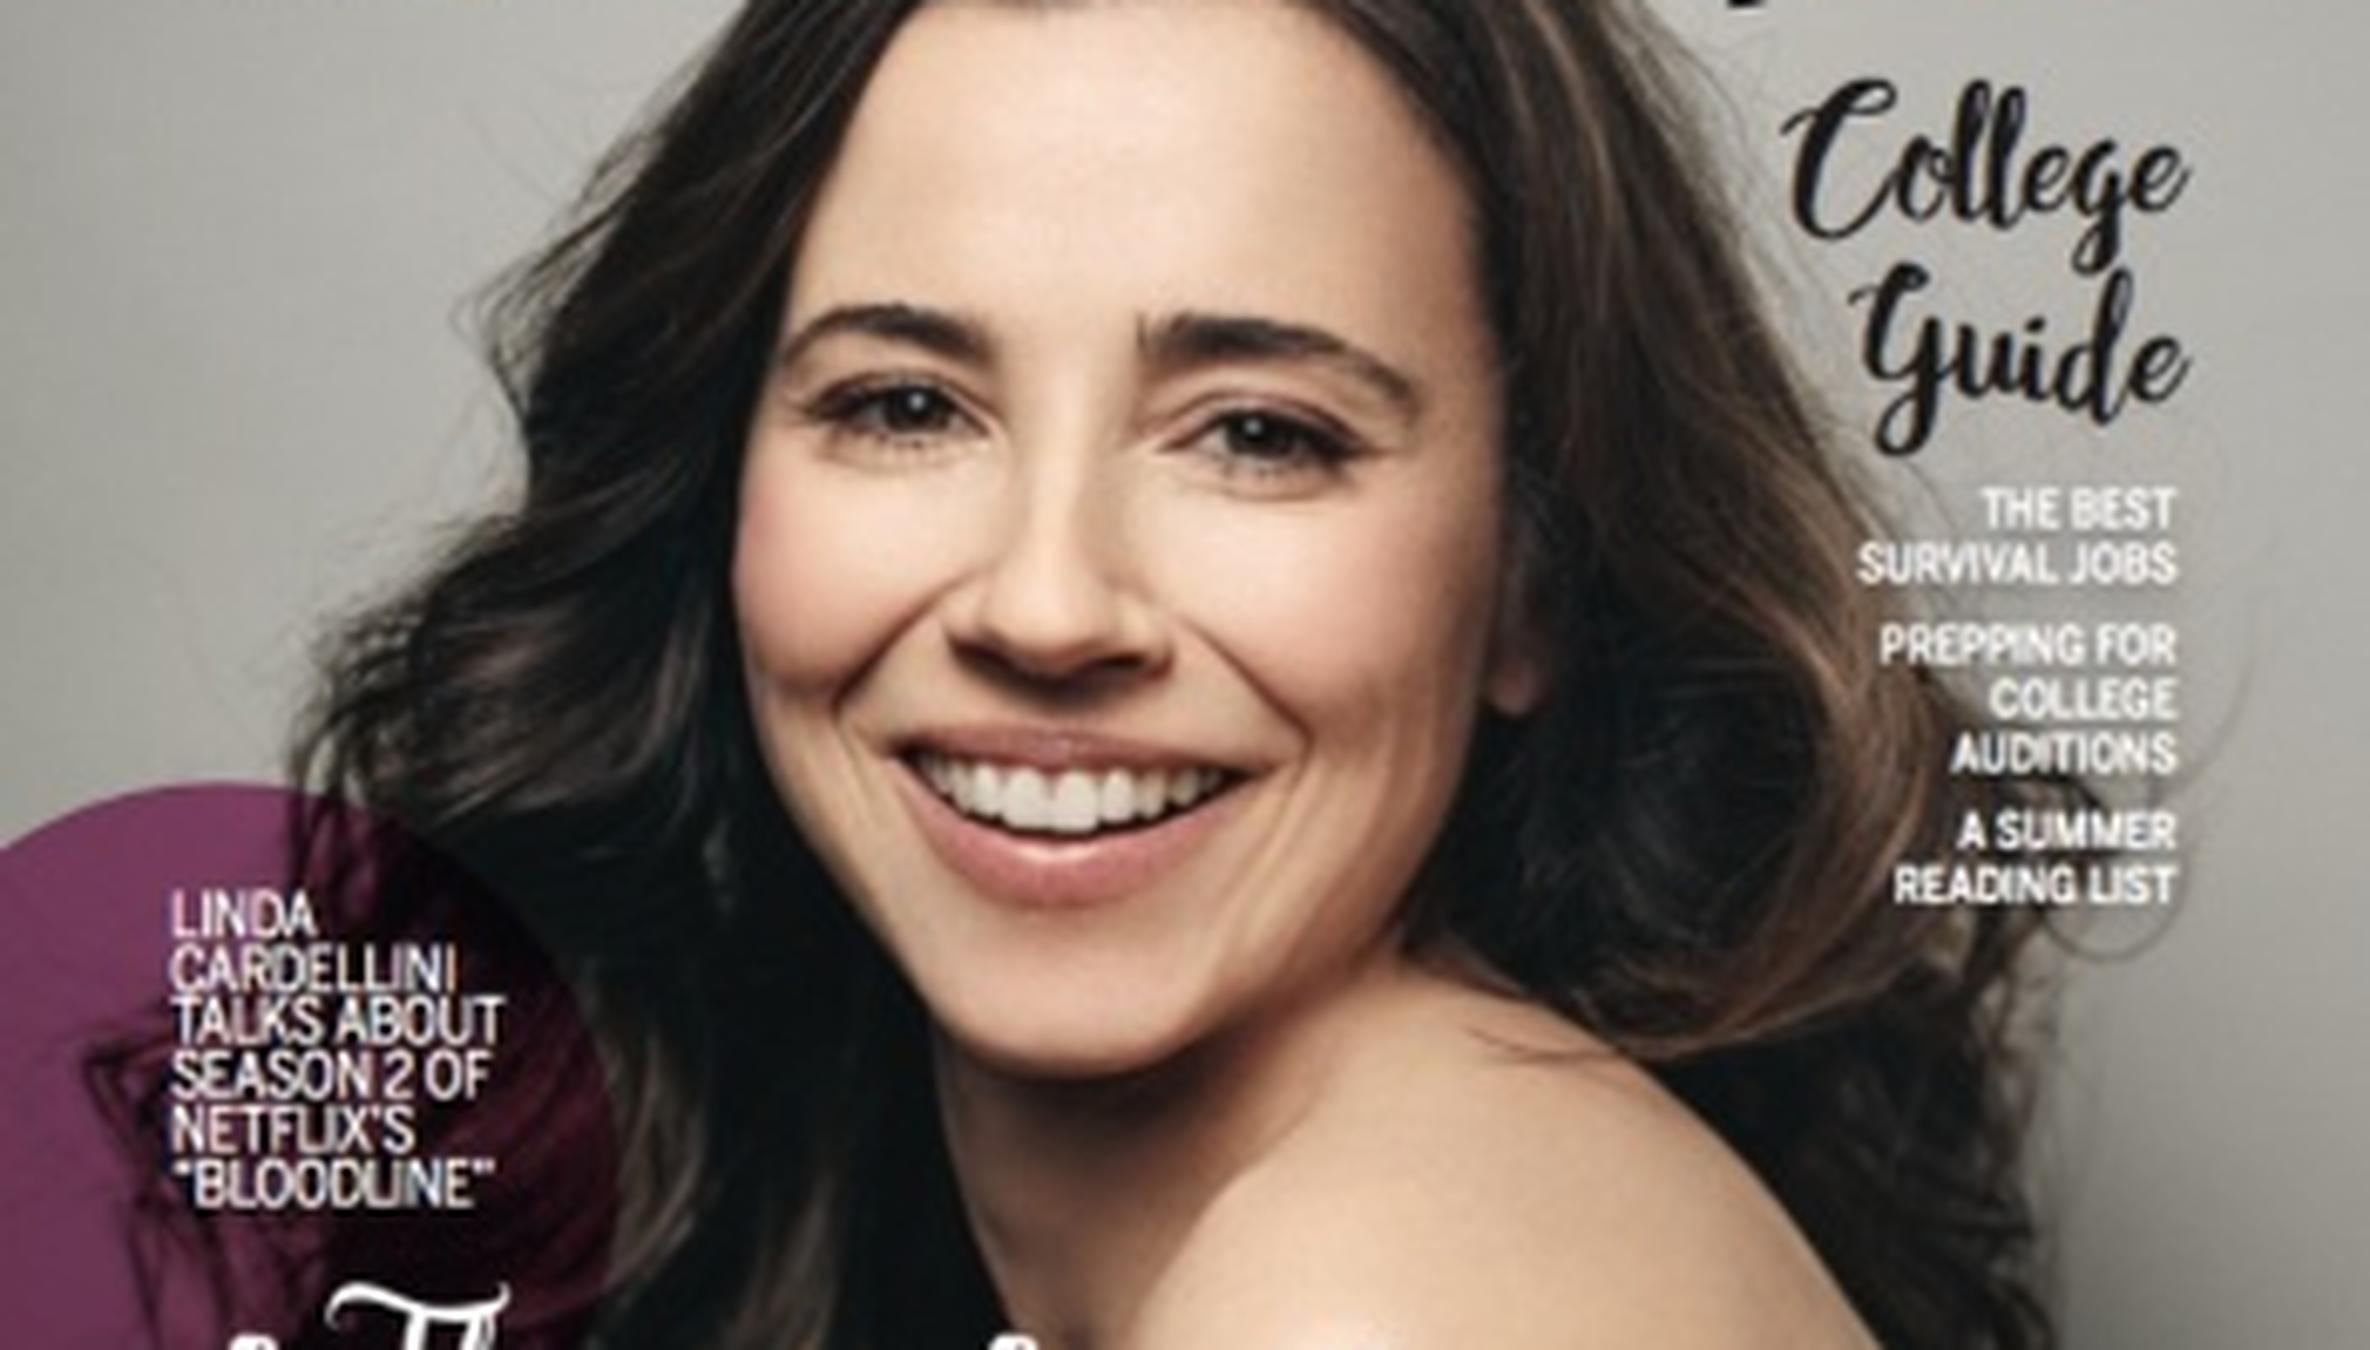 Linda Cardellini nude (87 photo), Sexy, Is a cute, Instagram, cameltoe 2015